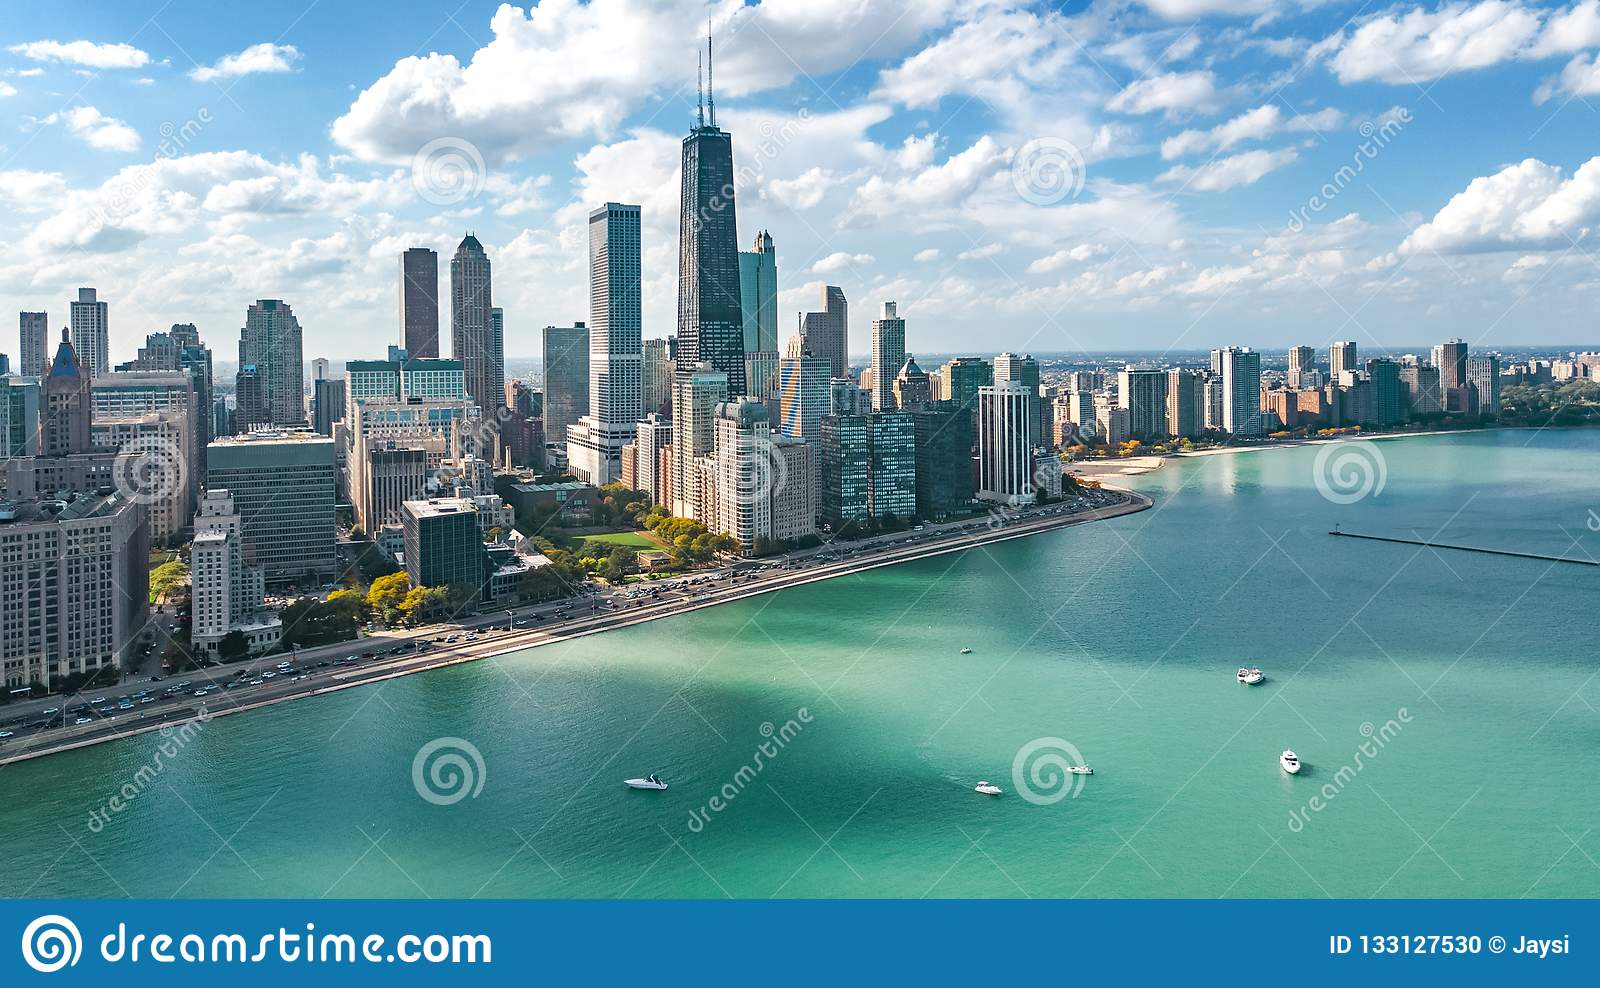 Chicago Skyline Aerial Drone View From Above Lake Michigan And City Of Chicago Downtown Skyscrapers Cityscape Illinois Usa Stock Photo Image Of Lake Midwest 133127530